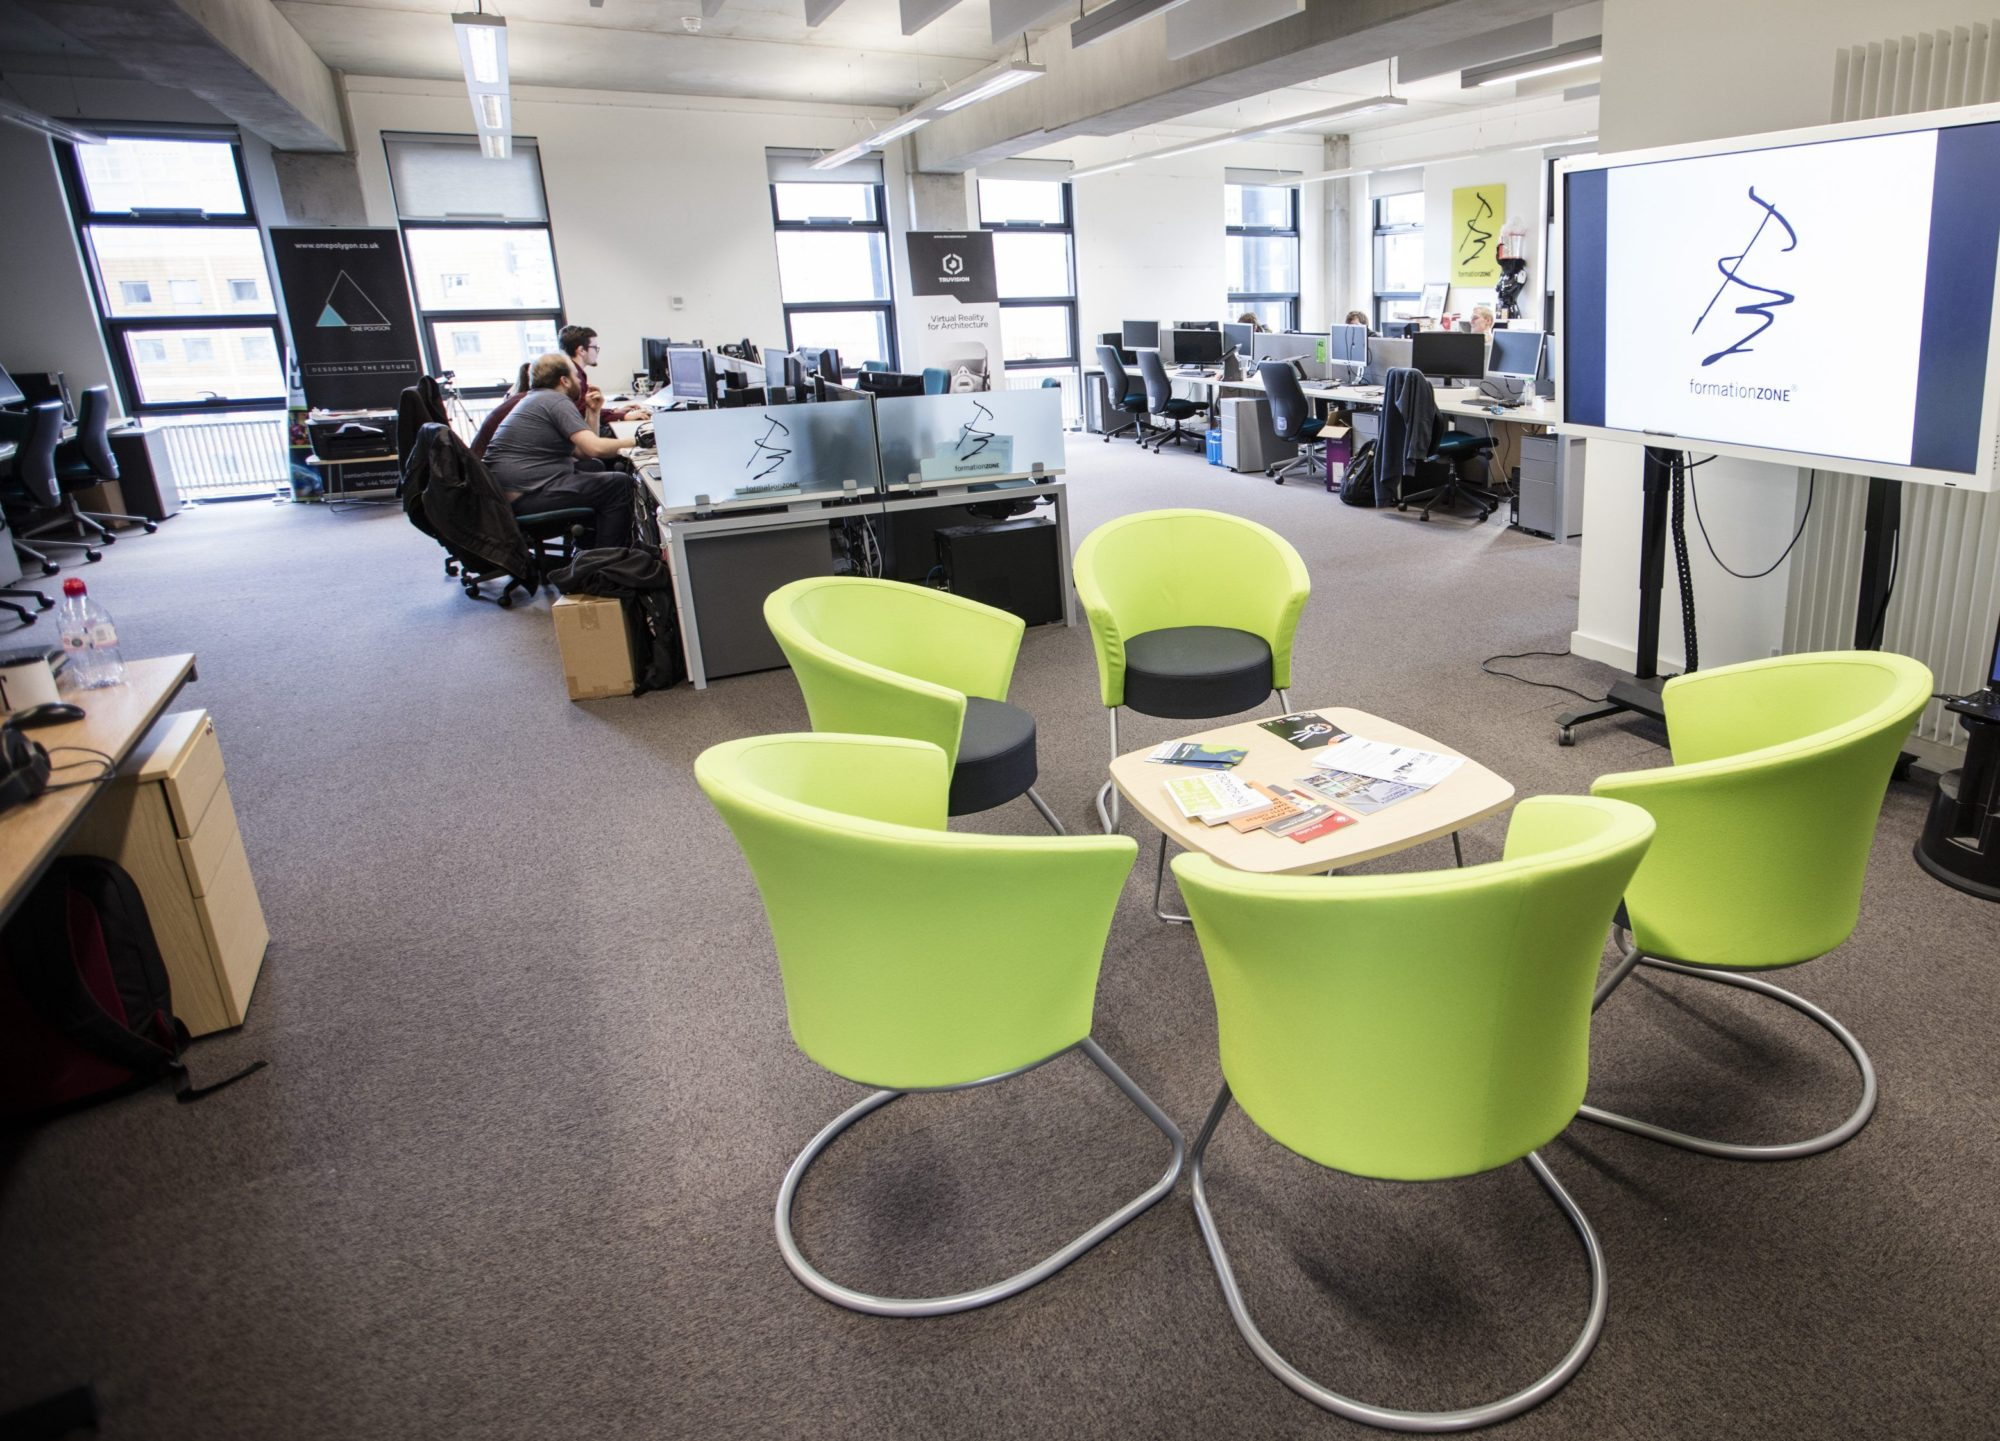 Formation Zone open plan office space with businesses at work